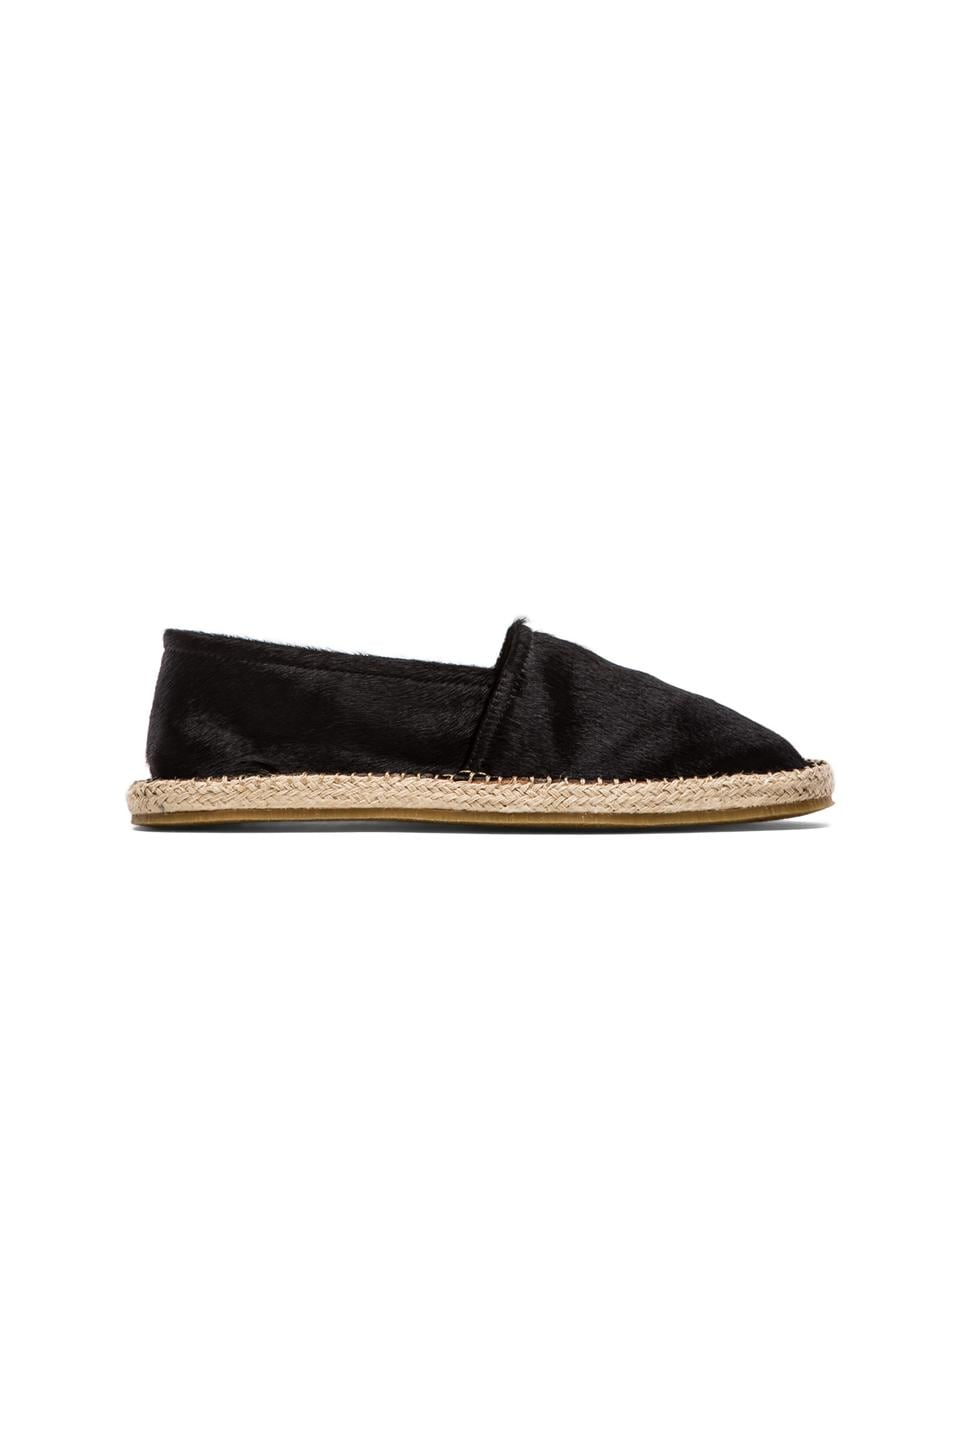 Del Toro Ponyhair Slip-On Espadrille in Black